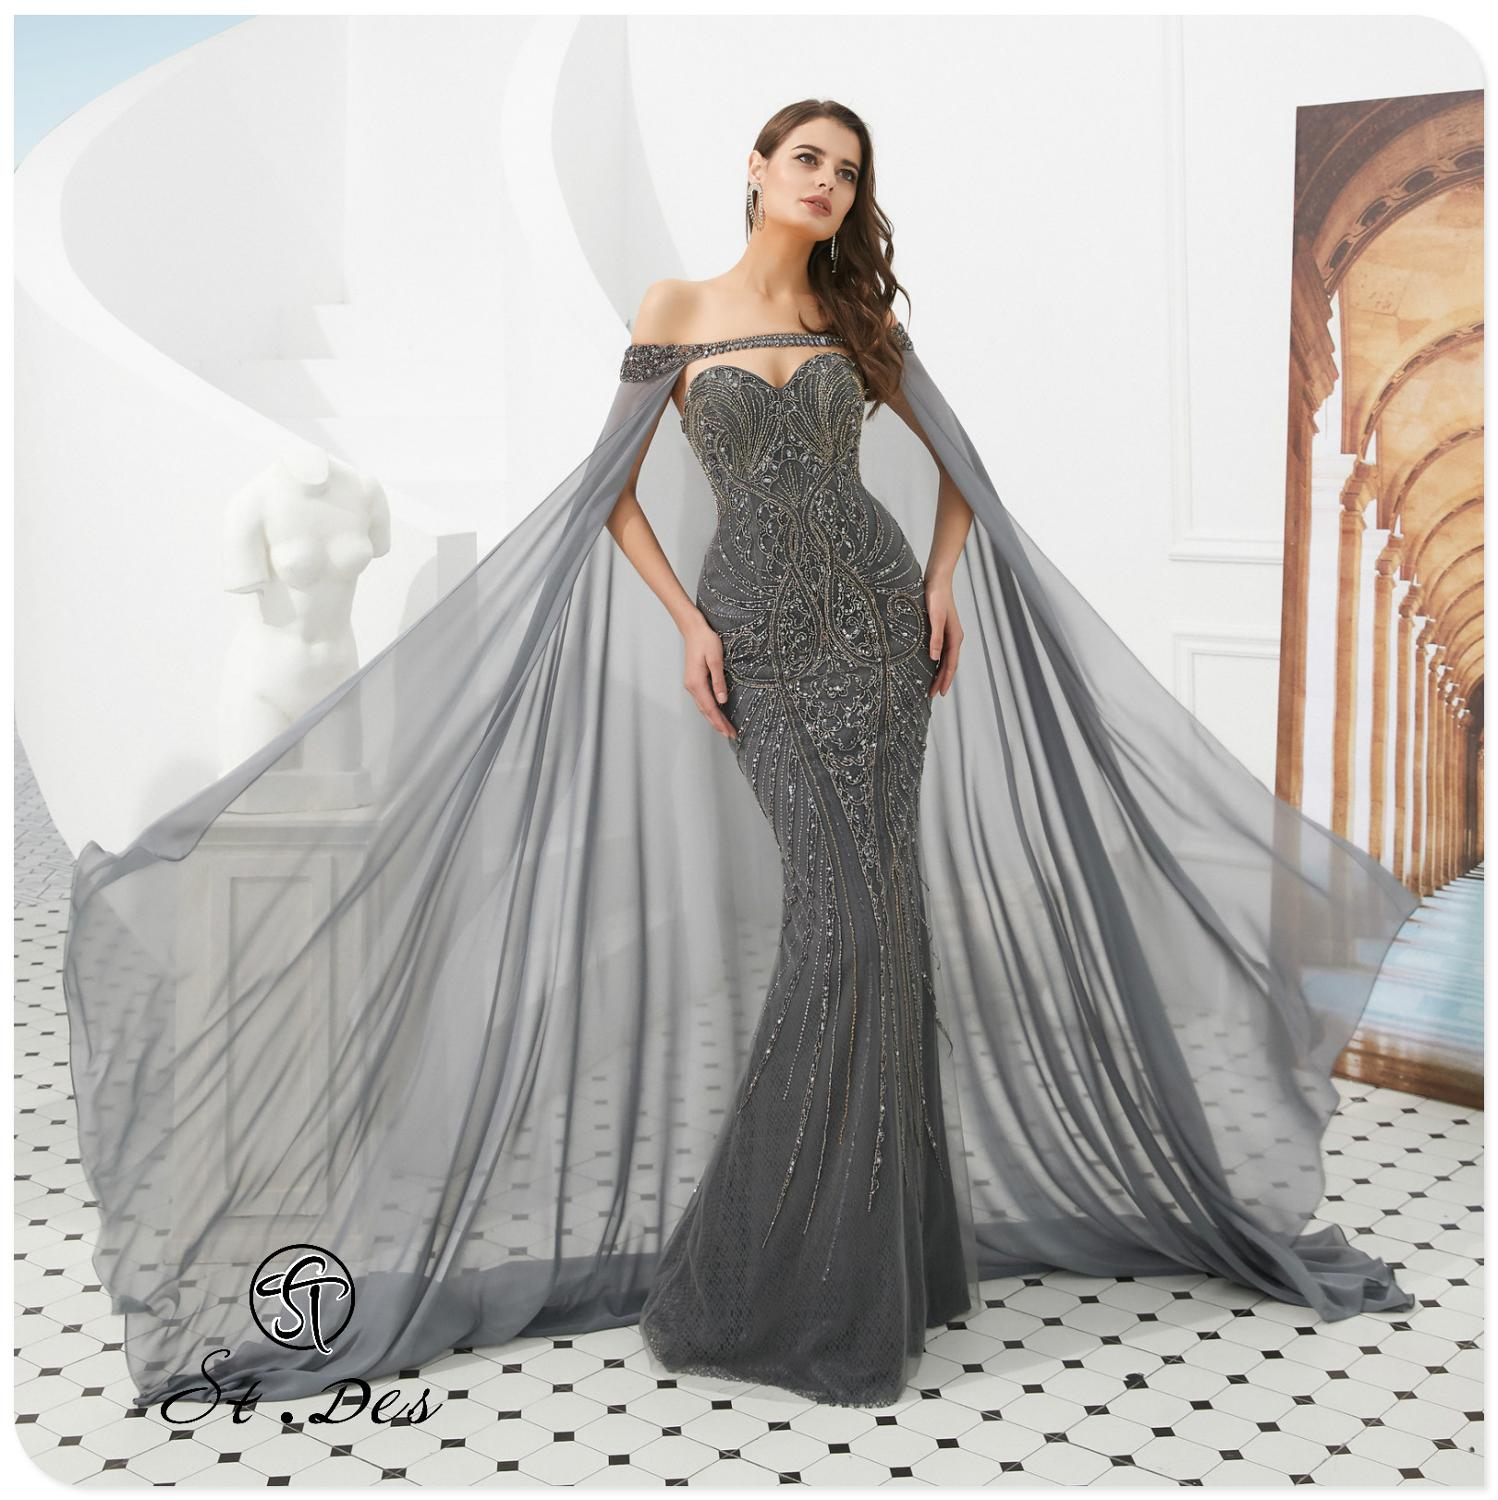 2020 S.T.DES New Arrival Mermaid Strapless Cape Grey Sleeveless Shining Floor Length Sequined Sexy Evening Gowns Party Dress